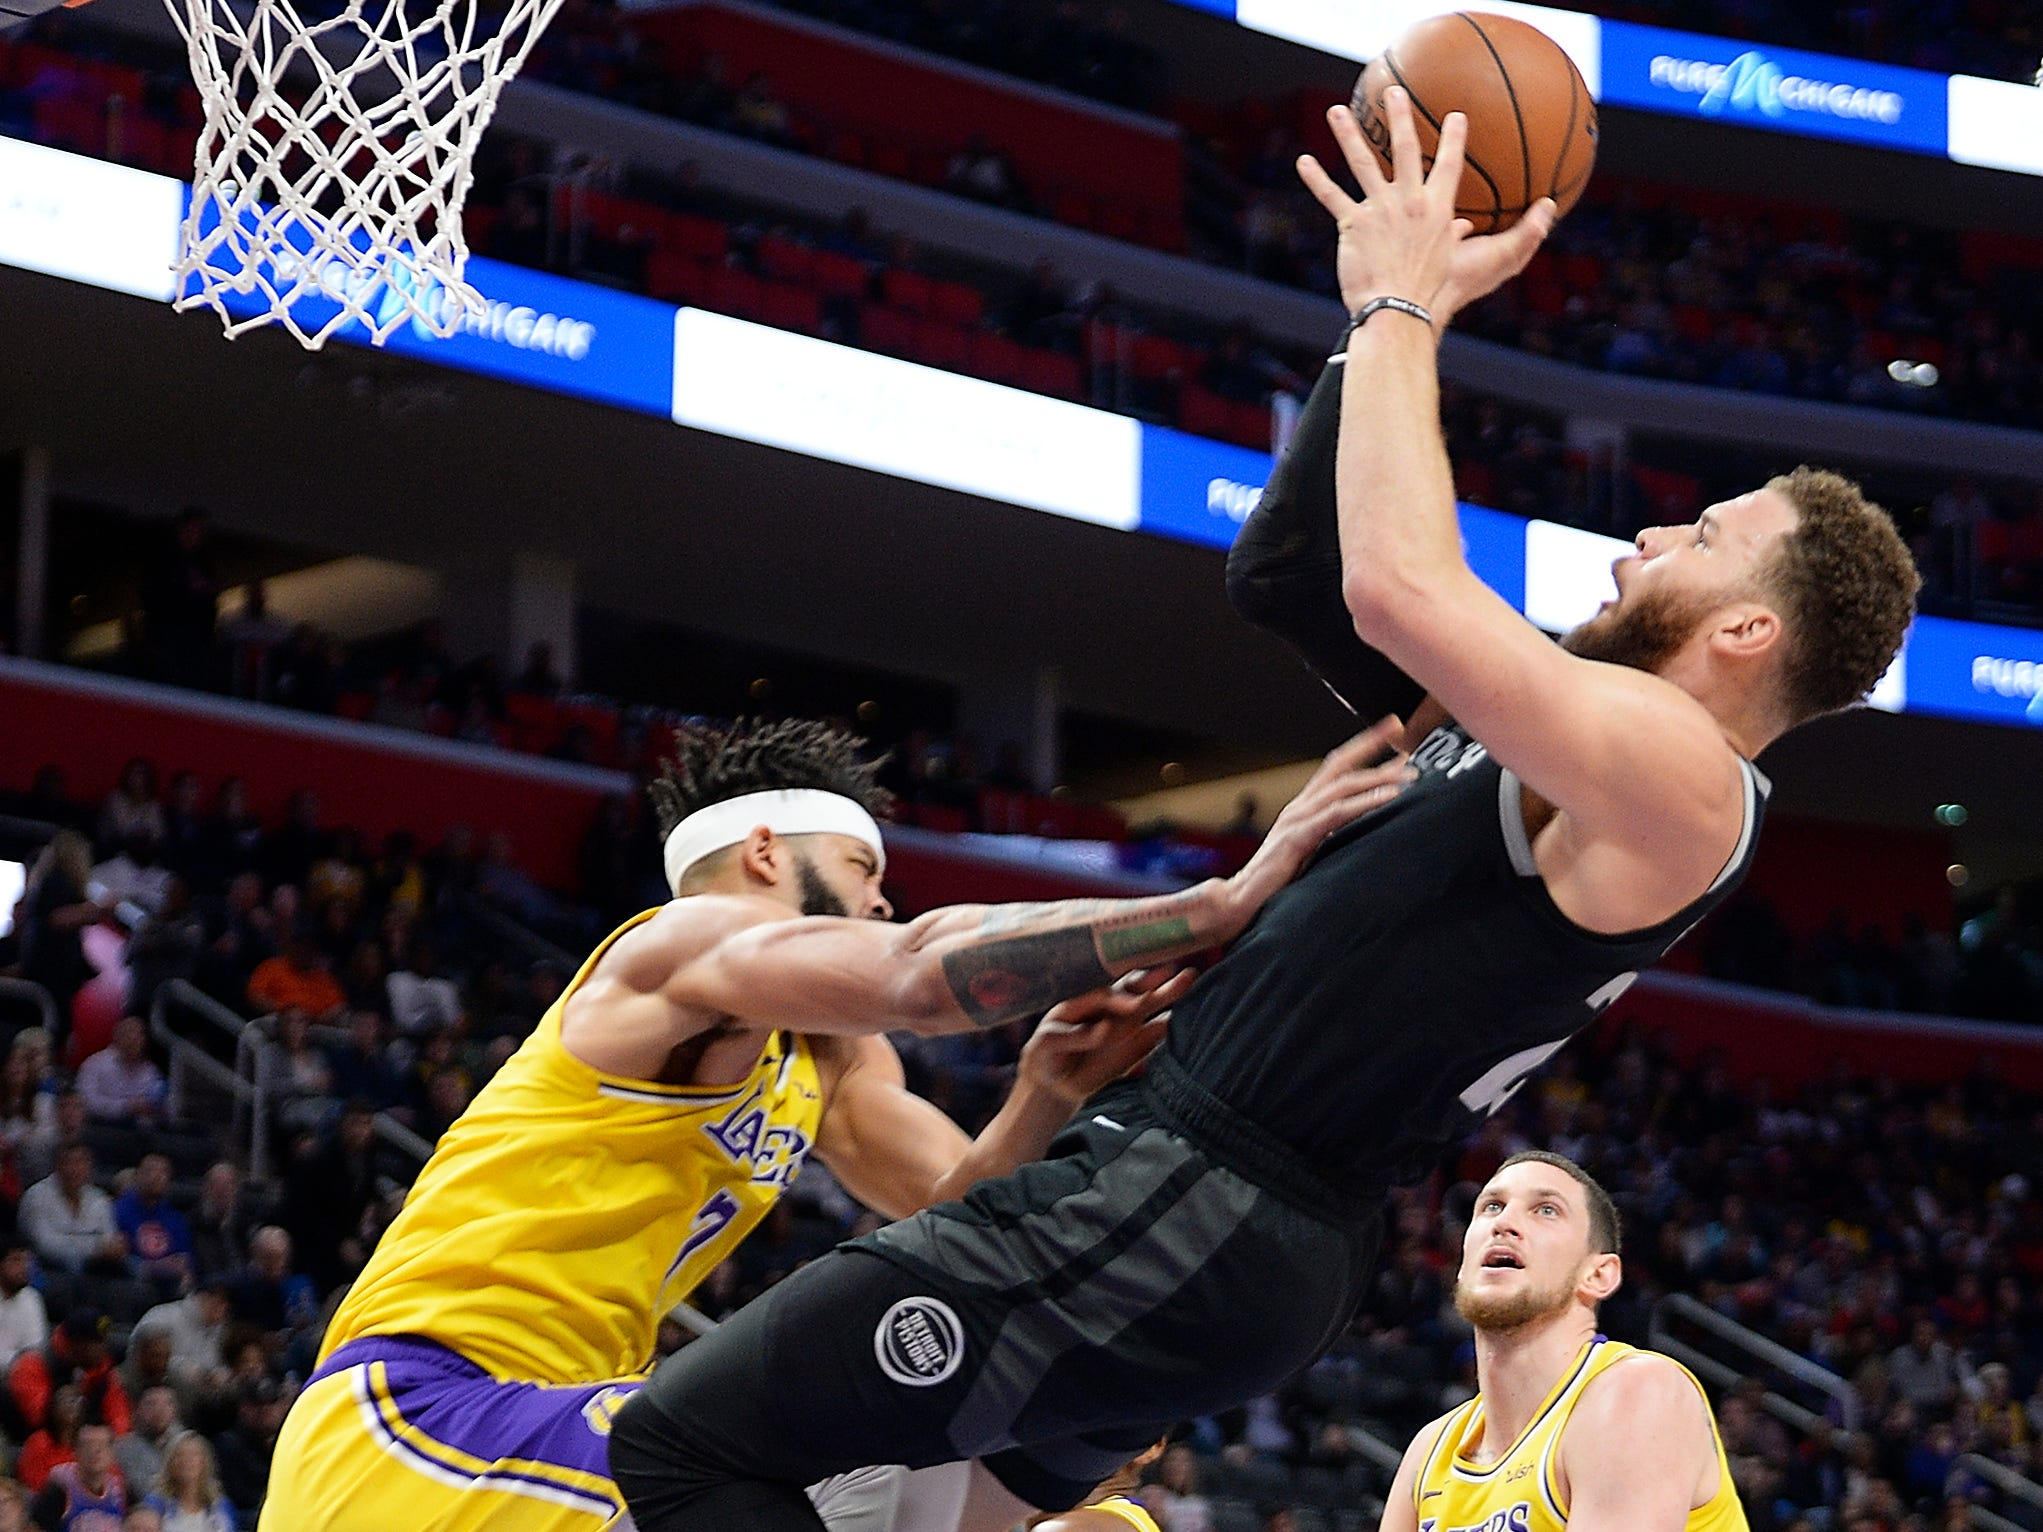 Pistons' Blake Griffin collides with Lakers' JaVale McGee while shooting in the first quarter. Griffin had 15 points and 9 assists.